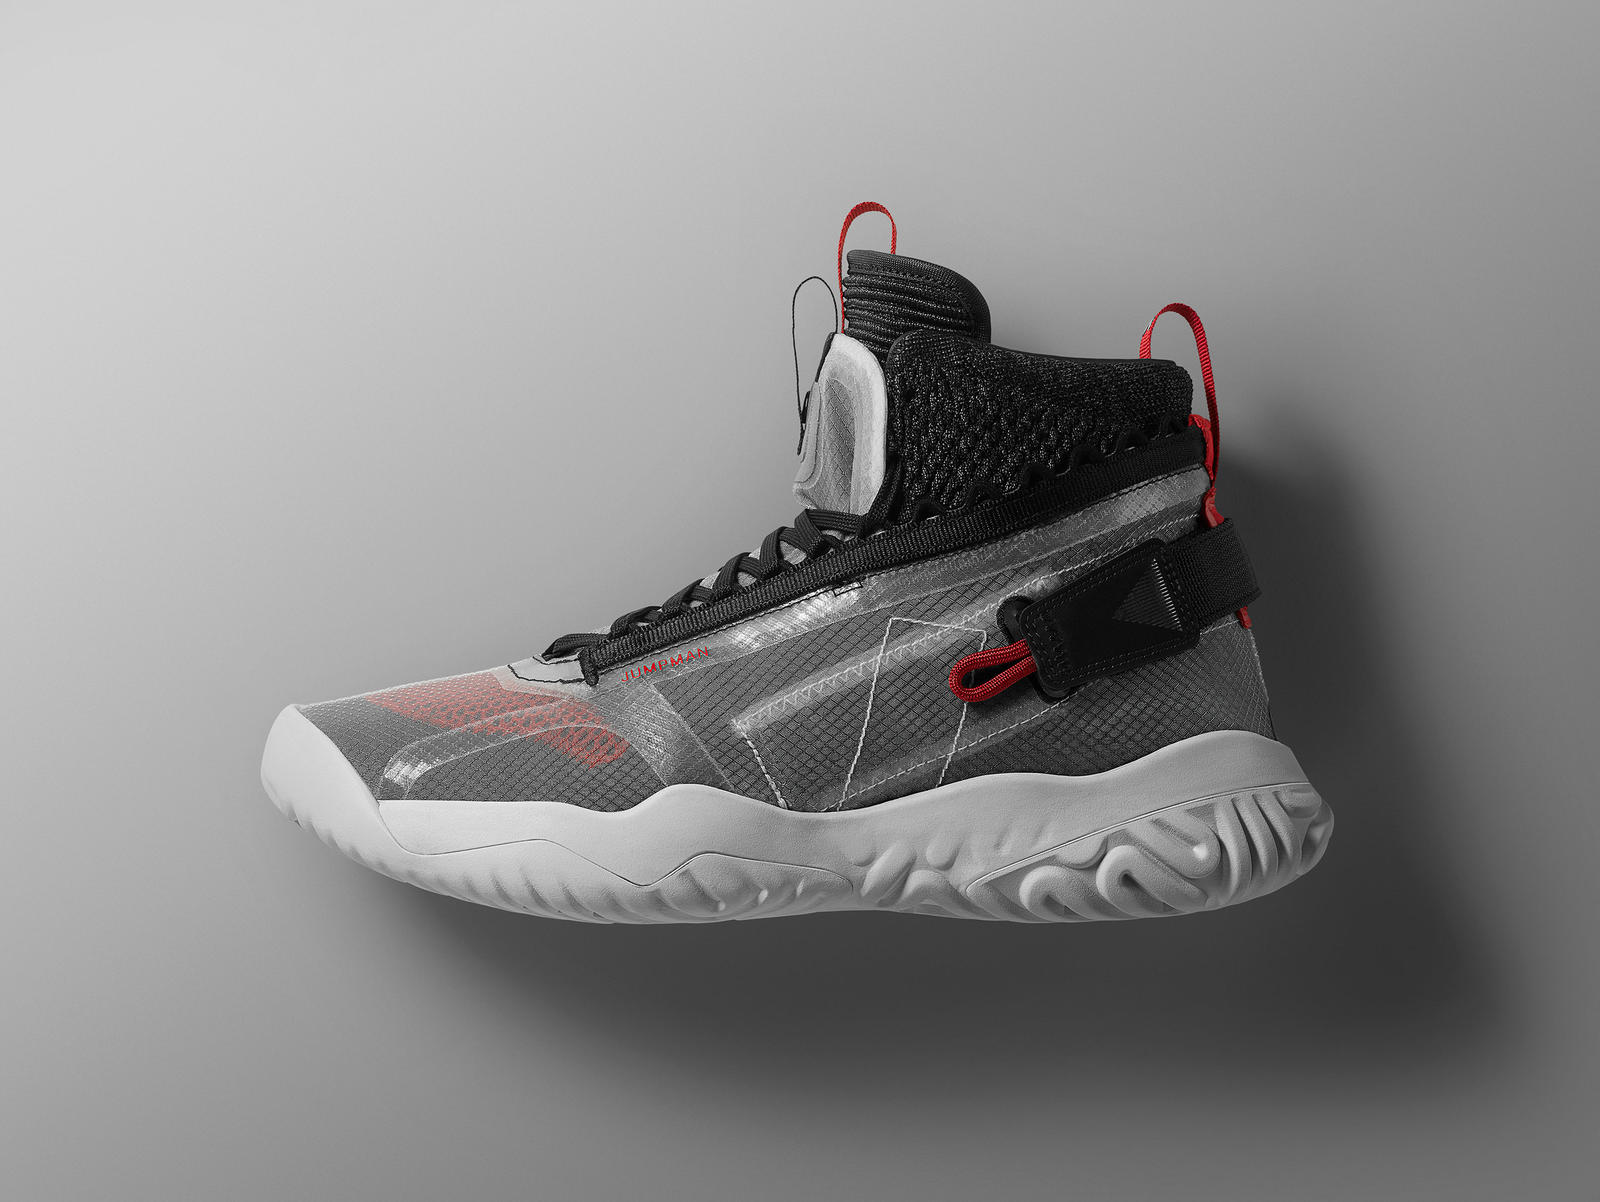 check out 807b7 0ac0f Jordan Apex Utility 1